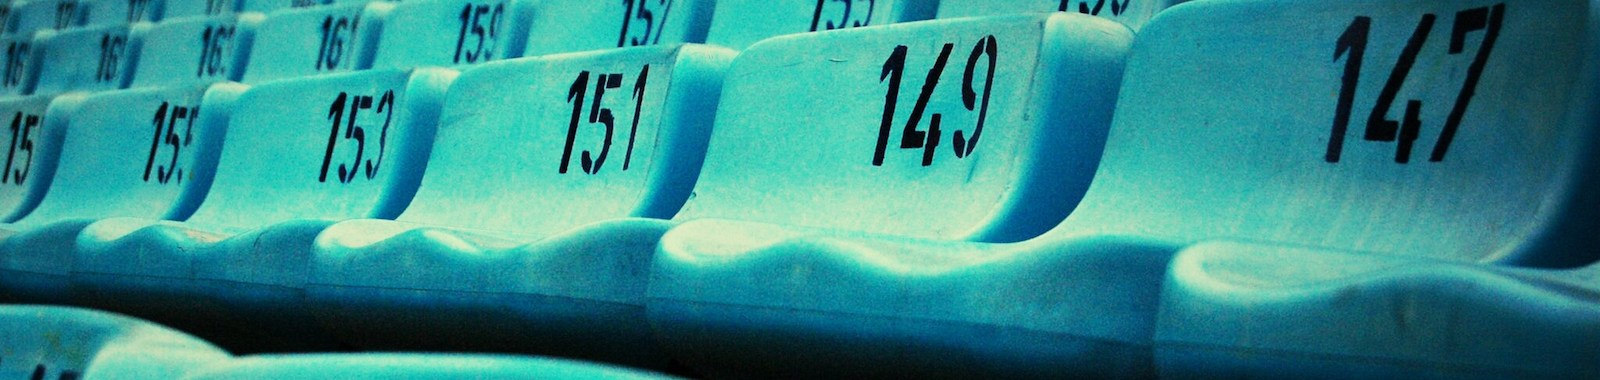 Numbers Painted On Chair